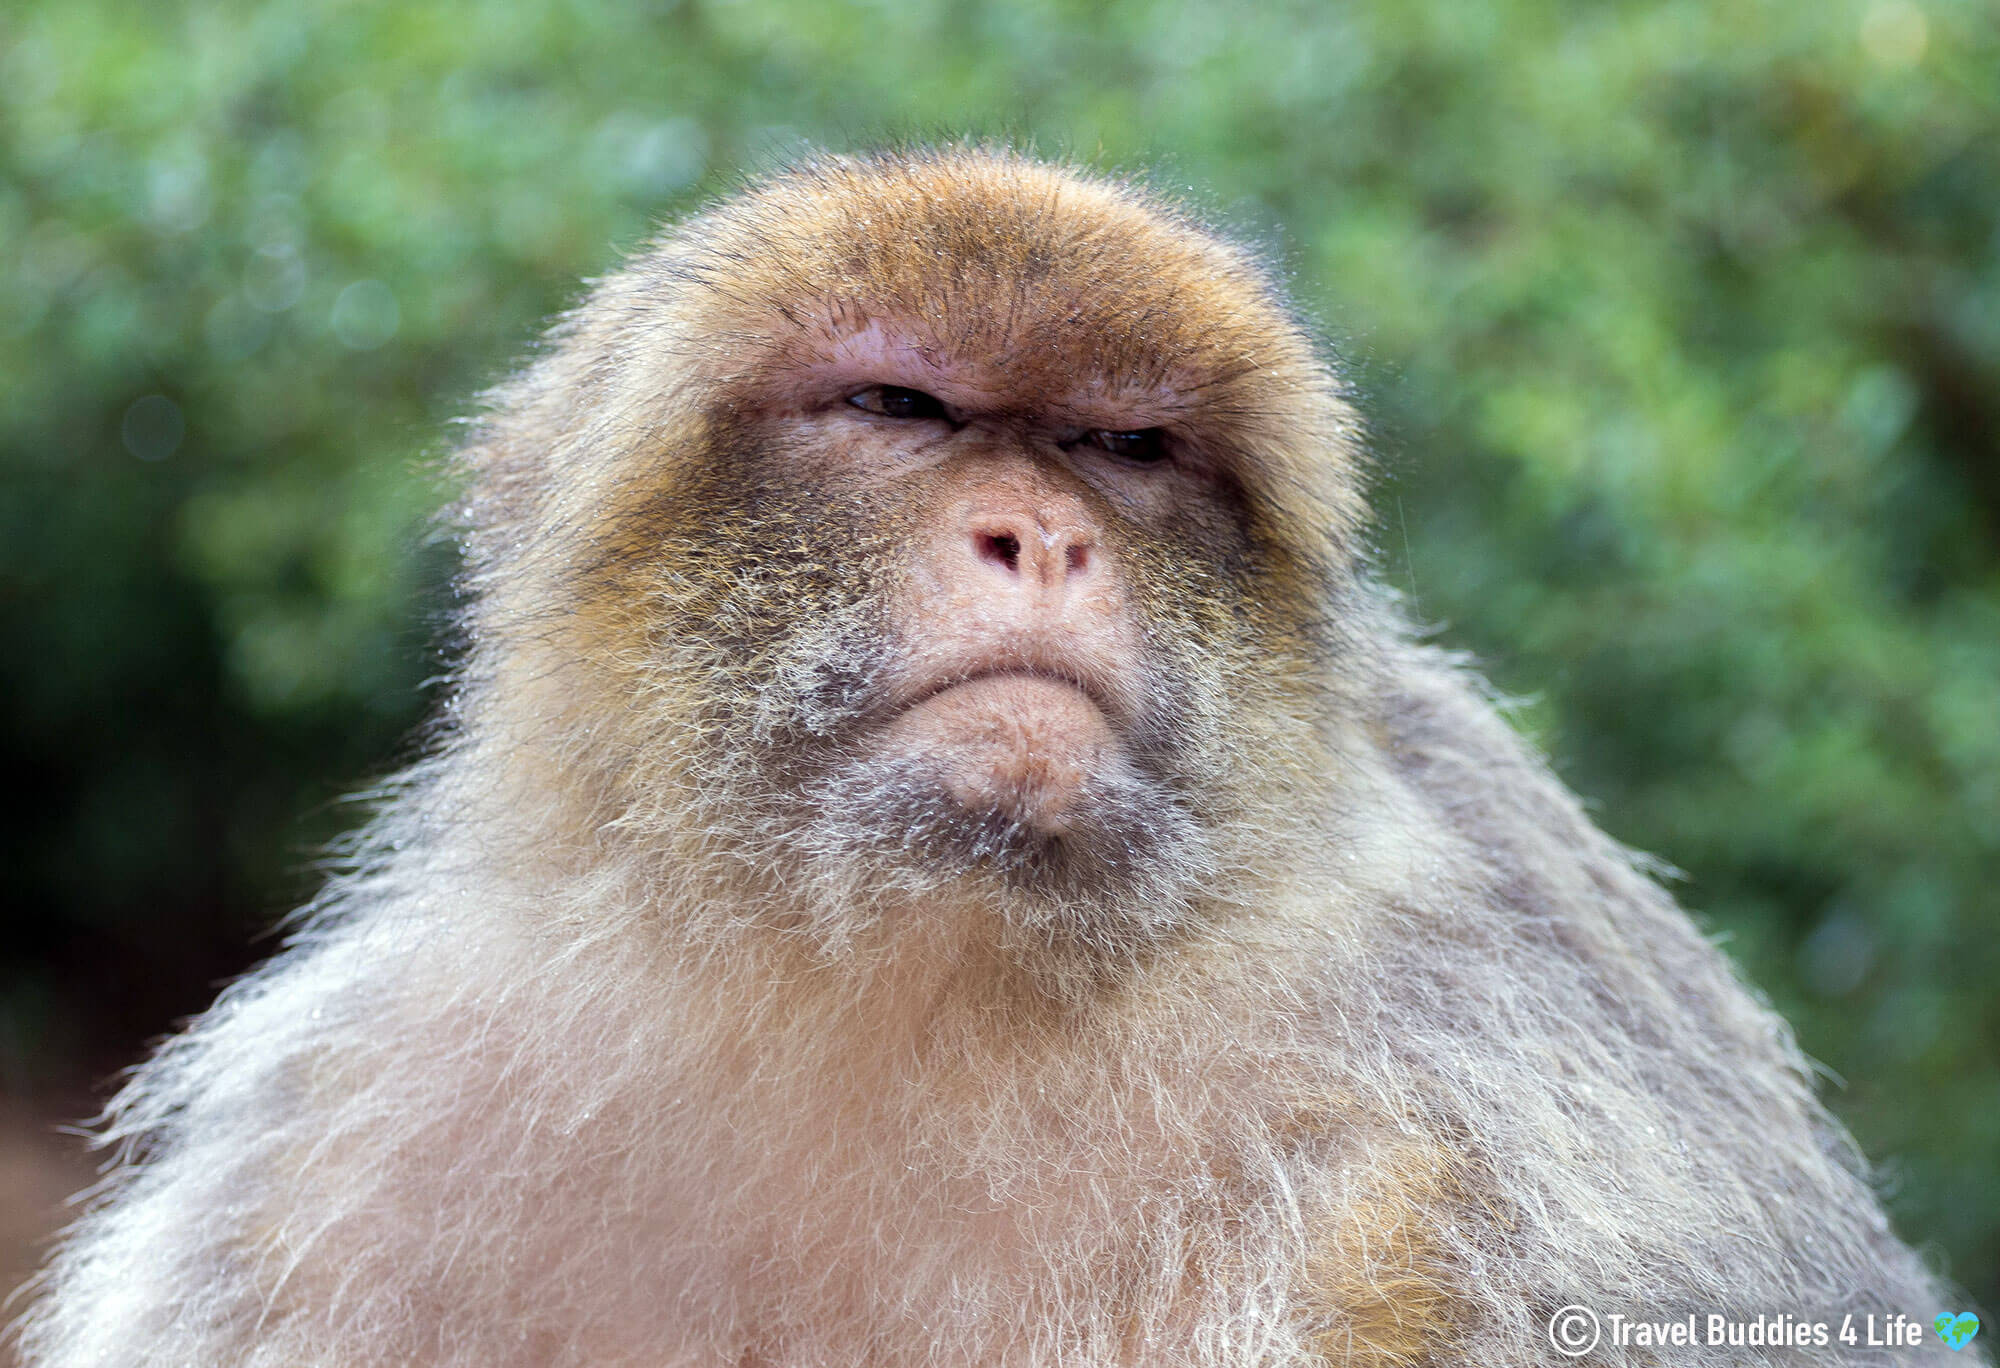 An Angry Barbary Macaque at the Foret des Singes in Rocamadour, Southern France, Europe